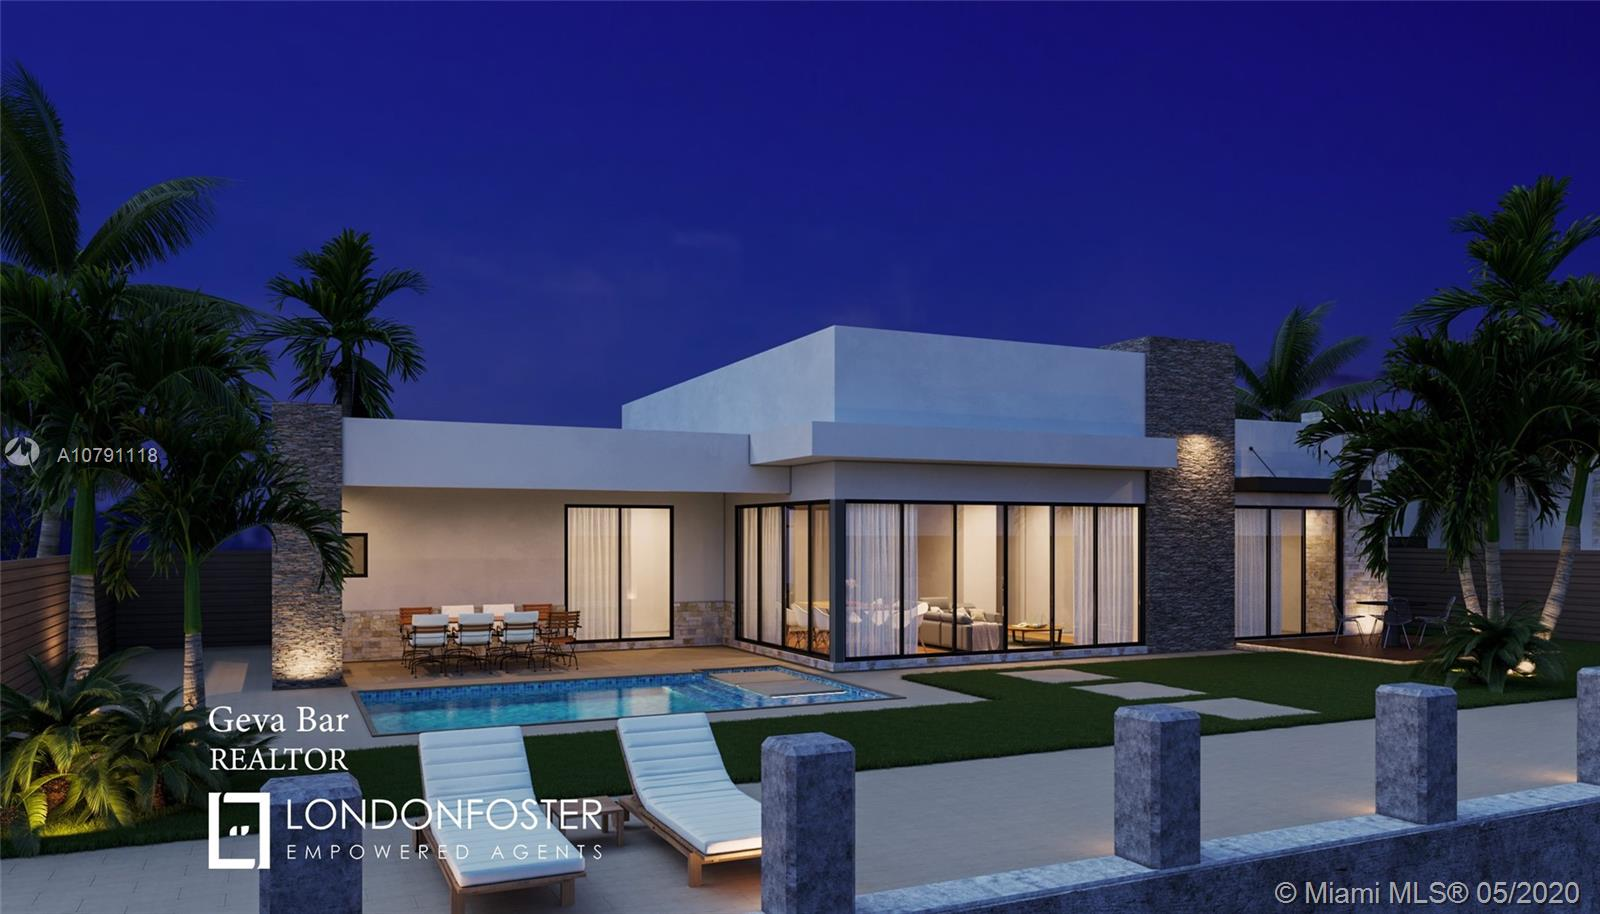 100 FEET ON THE WATER IN CORAL RIDGE! Architecture designed by Steve Brandt, Design includes a  4 bedroom 3.5 bath 2987 living SQFT 2 CAR 445 SQFT garage and 364 SQFT covered patio and 190 SQFT covered entry, and a pool. This modern home is designed with 14 foot ceilings 10 foot sliding glass doors 2 A/C ZONE GAS FOR KITCHEN AND BBQ AND IMPORTED EUROPEAN KITCHEN WITH MANY UPGRADES. 100 foot concrete dock, HOME CAN BE READY TO MOVE IN WITHIN 10-12 MONTHS. This home to be delivered end of 2020.